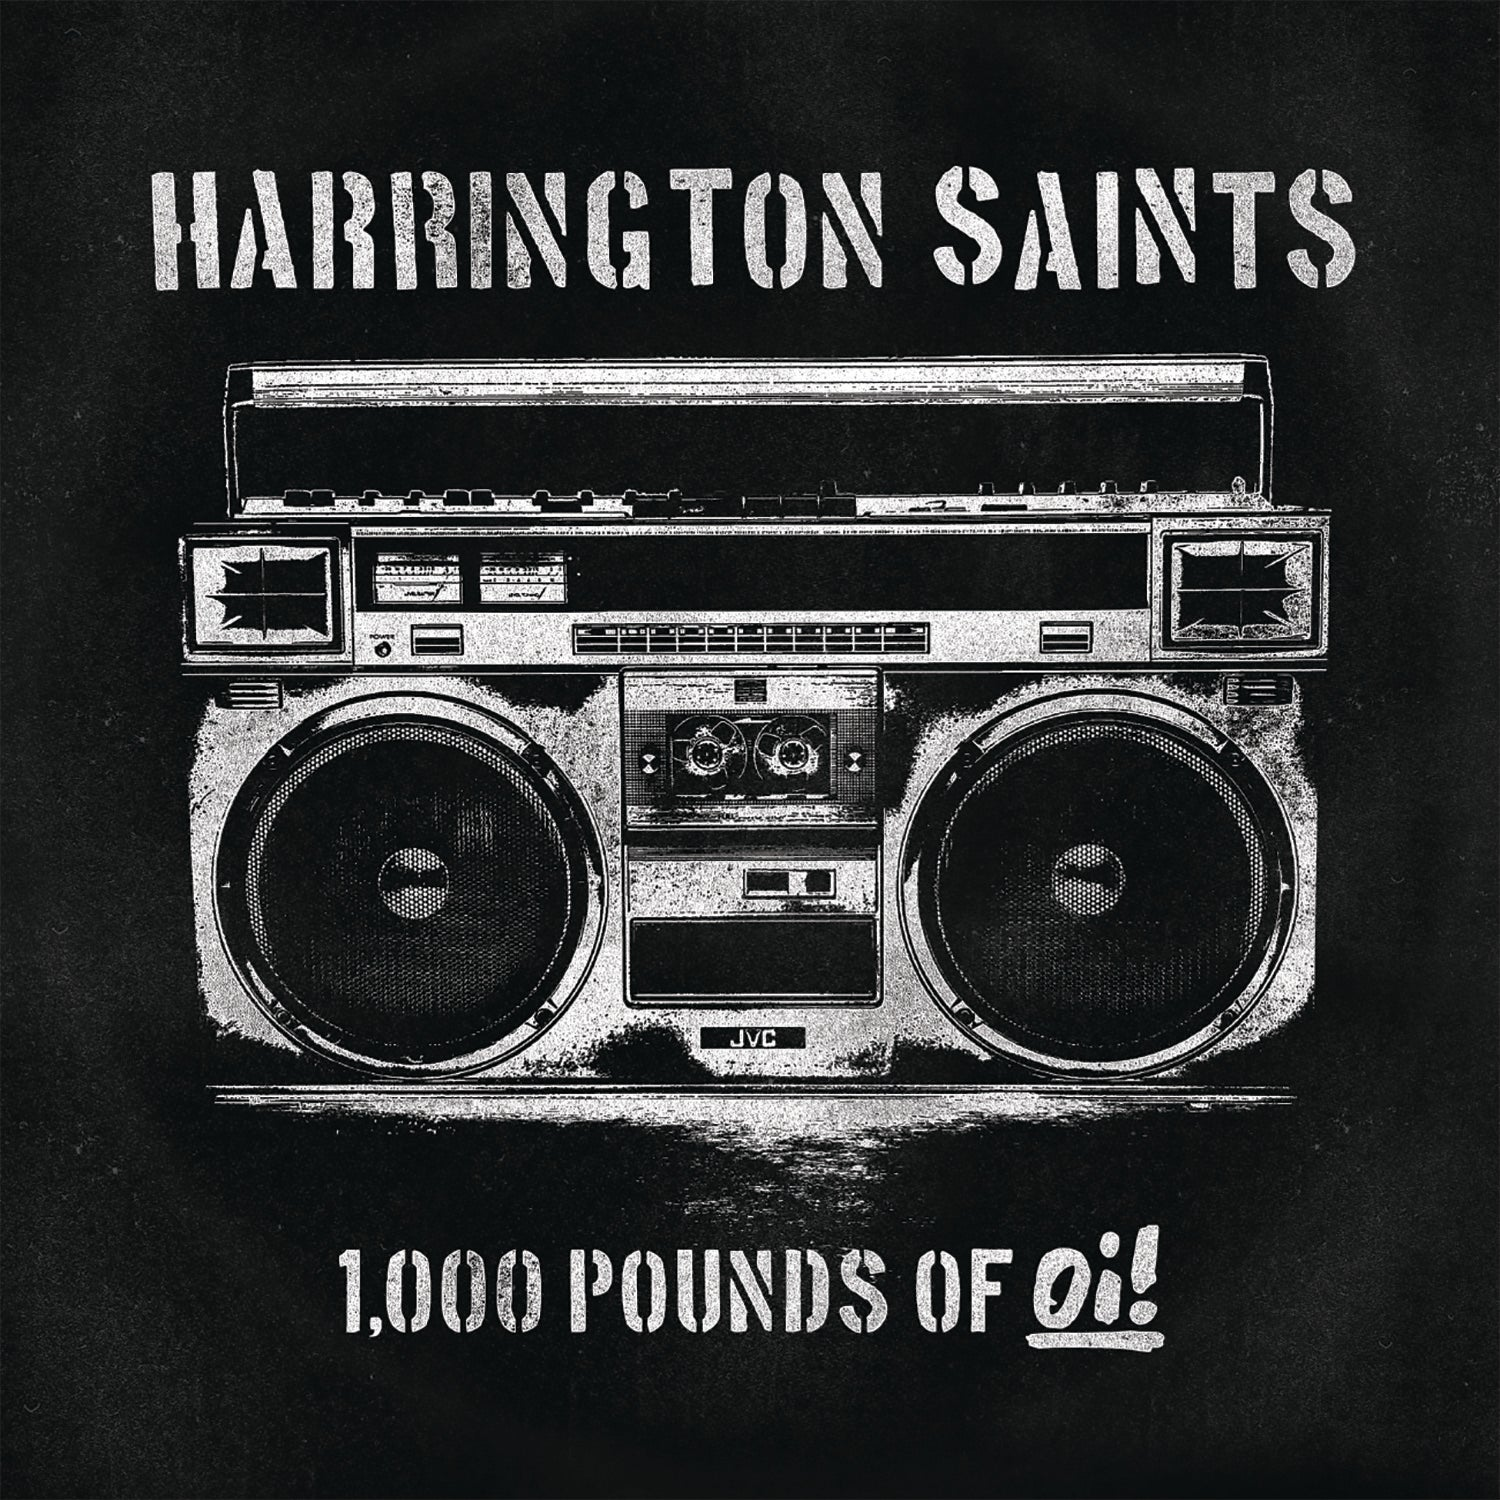 Harrington Saints - 1000 Pounds Of Oi! LP / CD